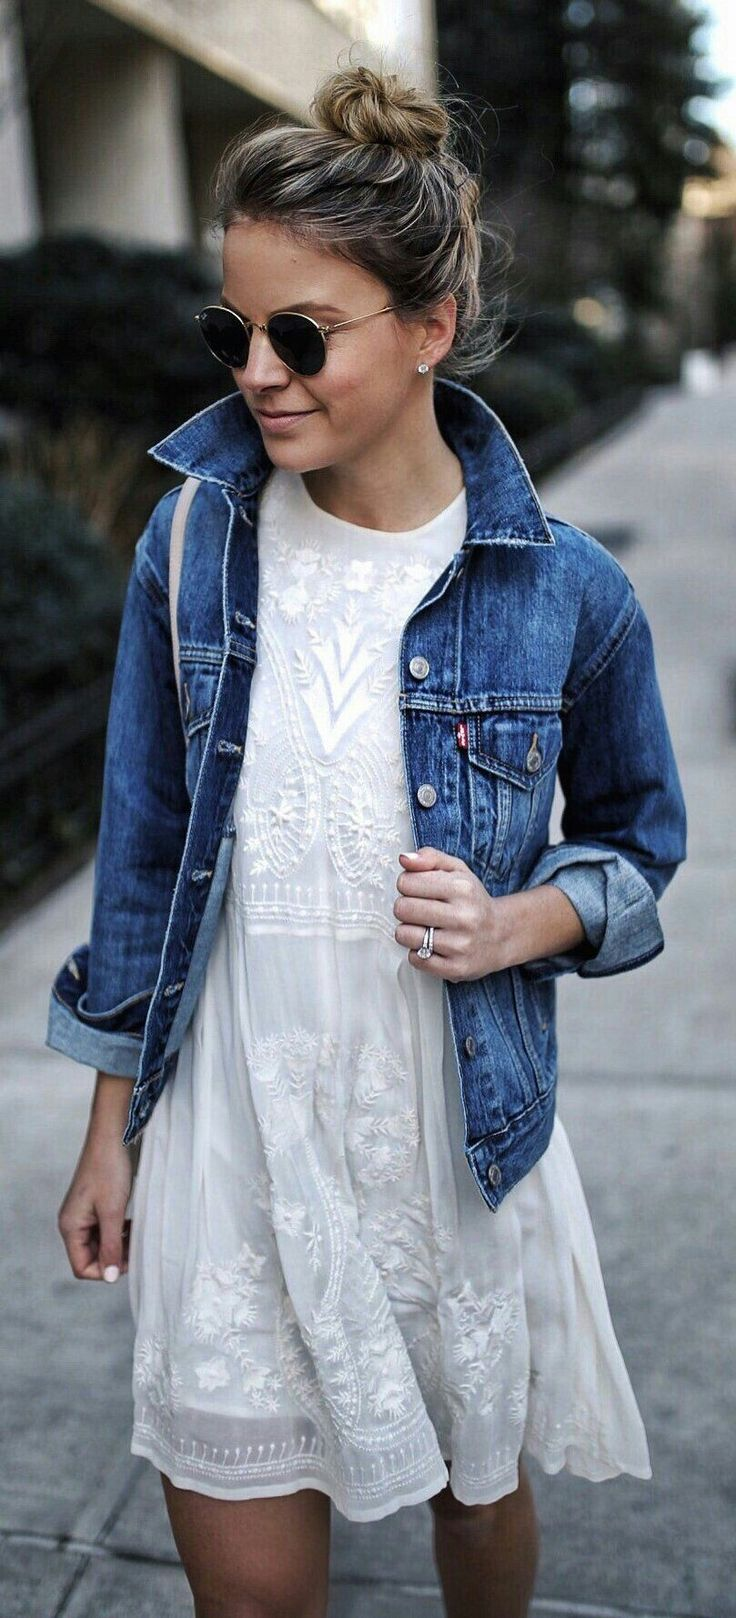 Basically looks like this dress denim jacket converse example - White Dress With Jean Jacket Minus The Shades